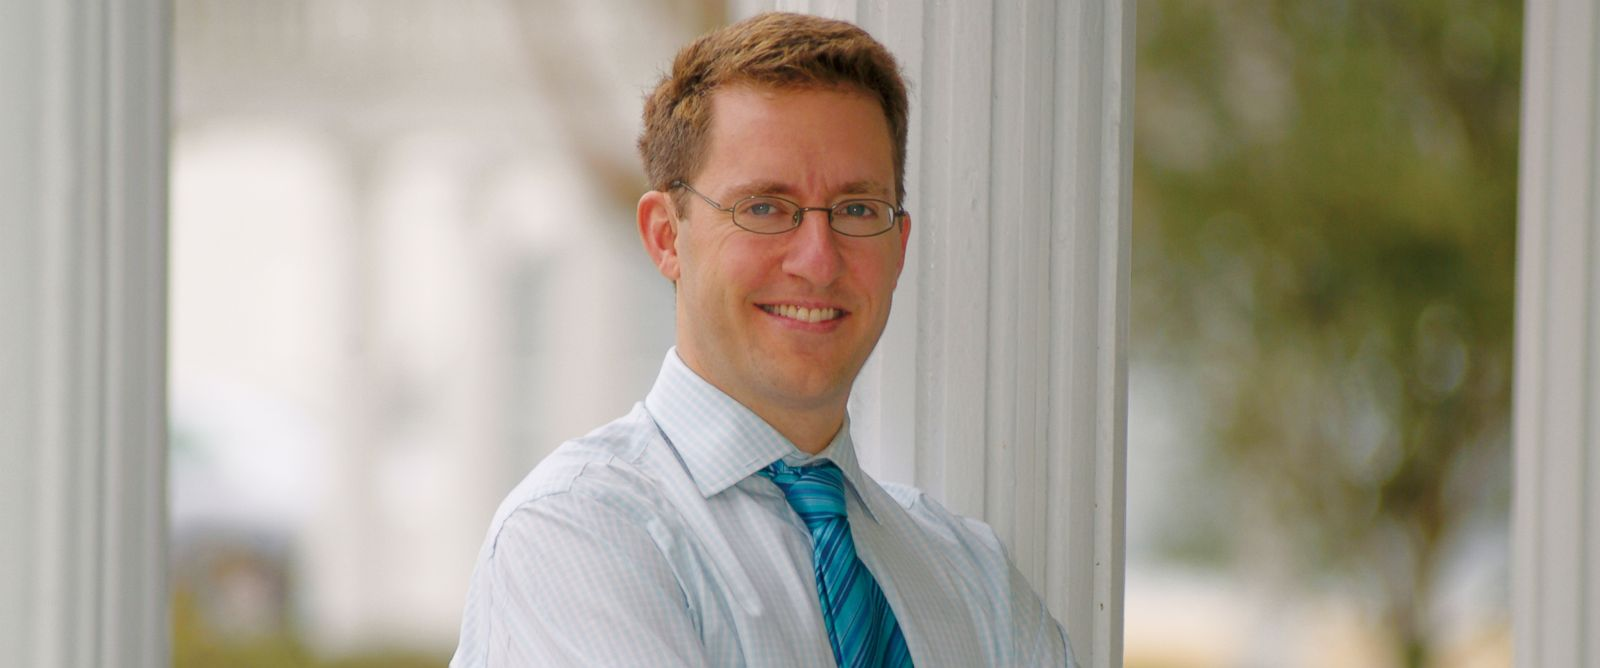 PHOTO: Police are trying to find the person who killed Florida State University law professor Dan Markel, 41.